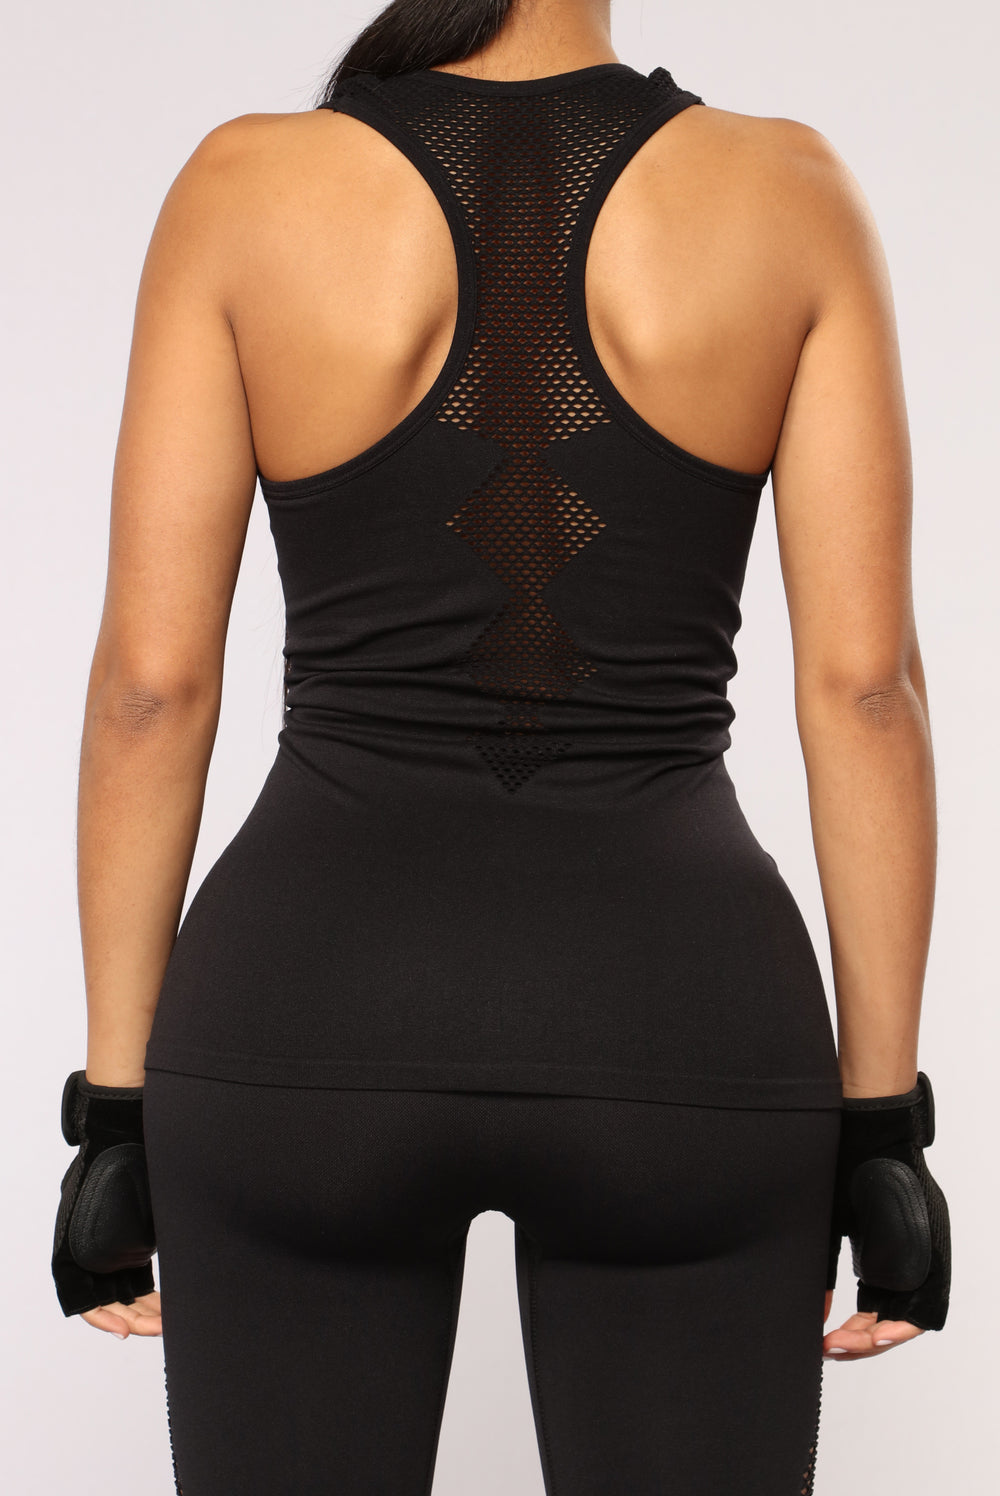 Try Me Out Seamless Active Top - Black